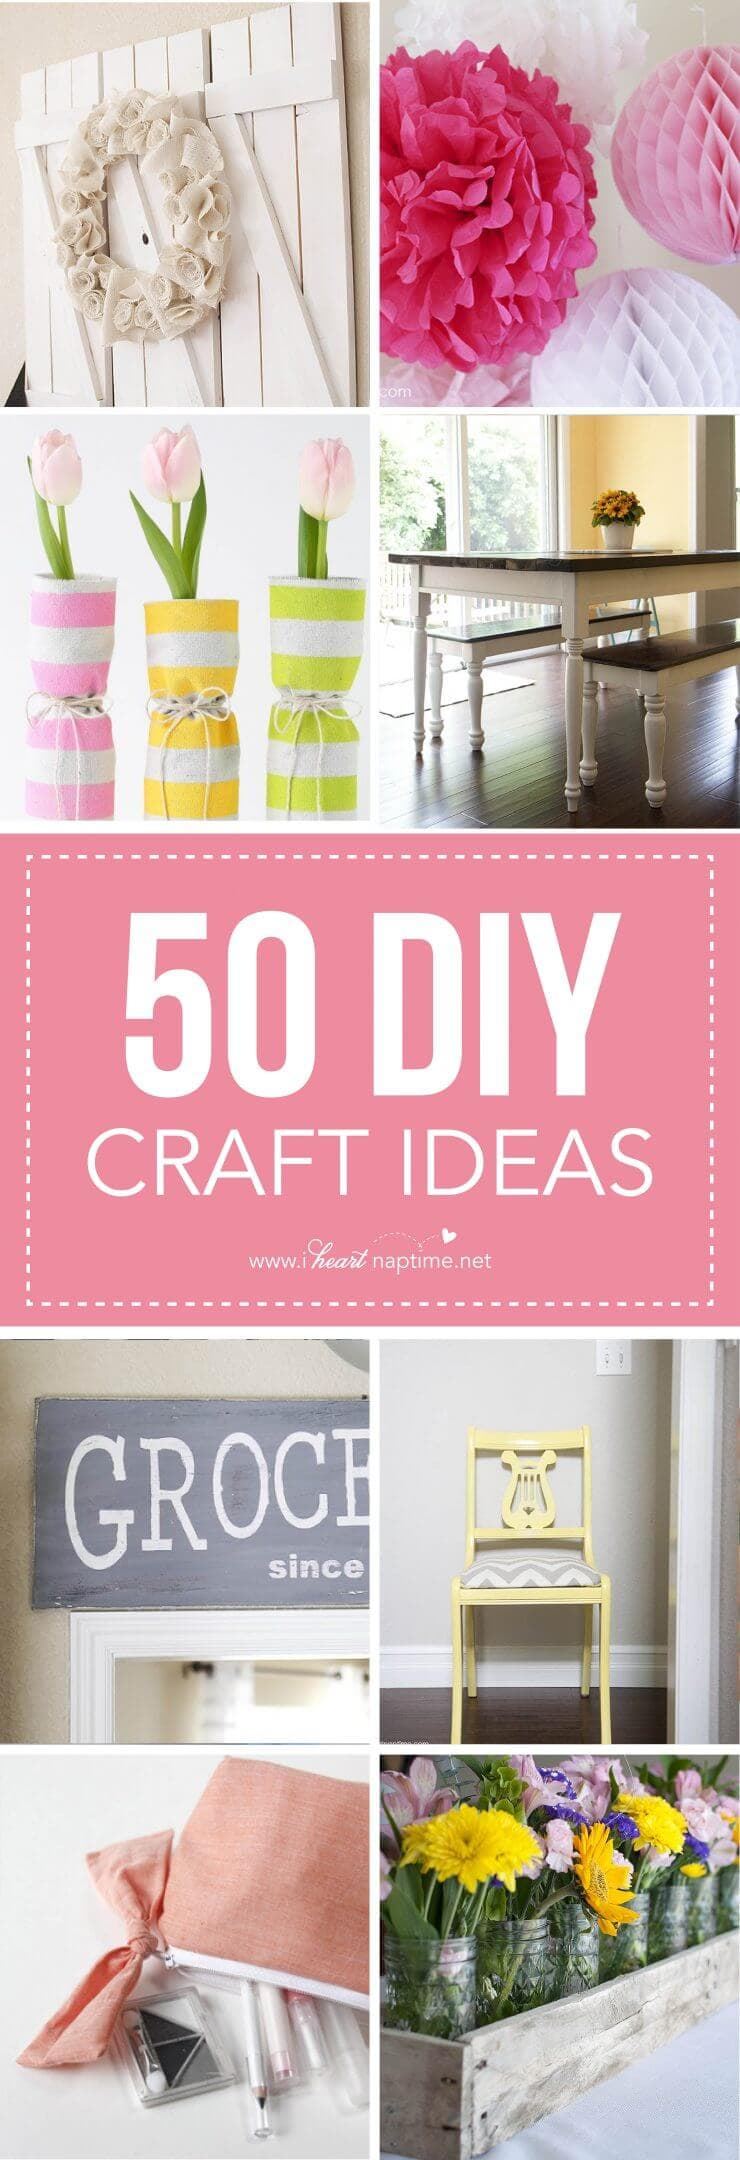 50 DIY craft ideas